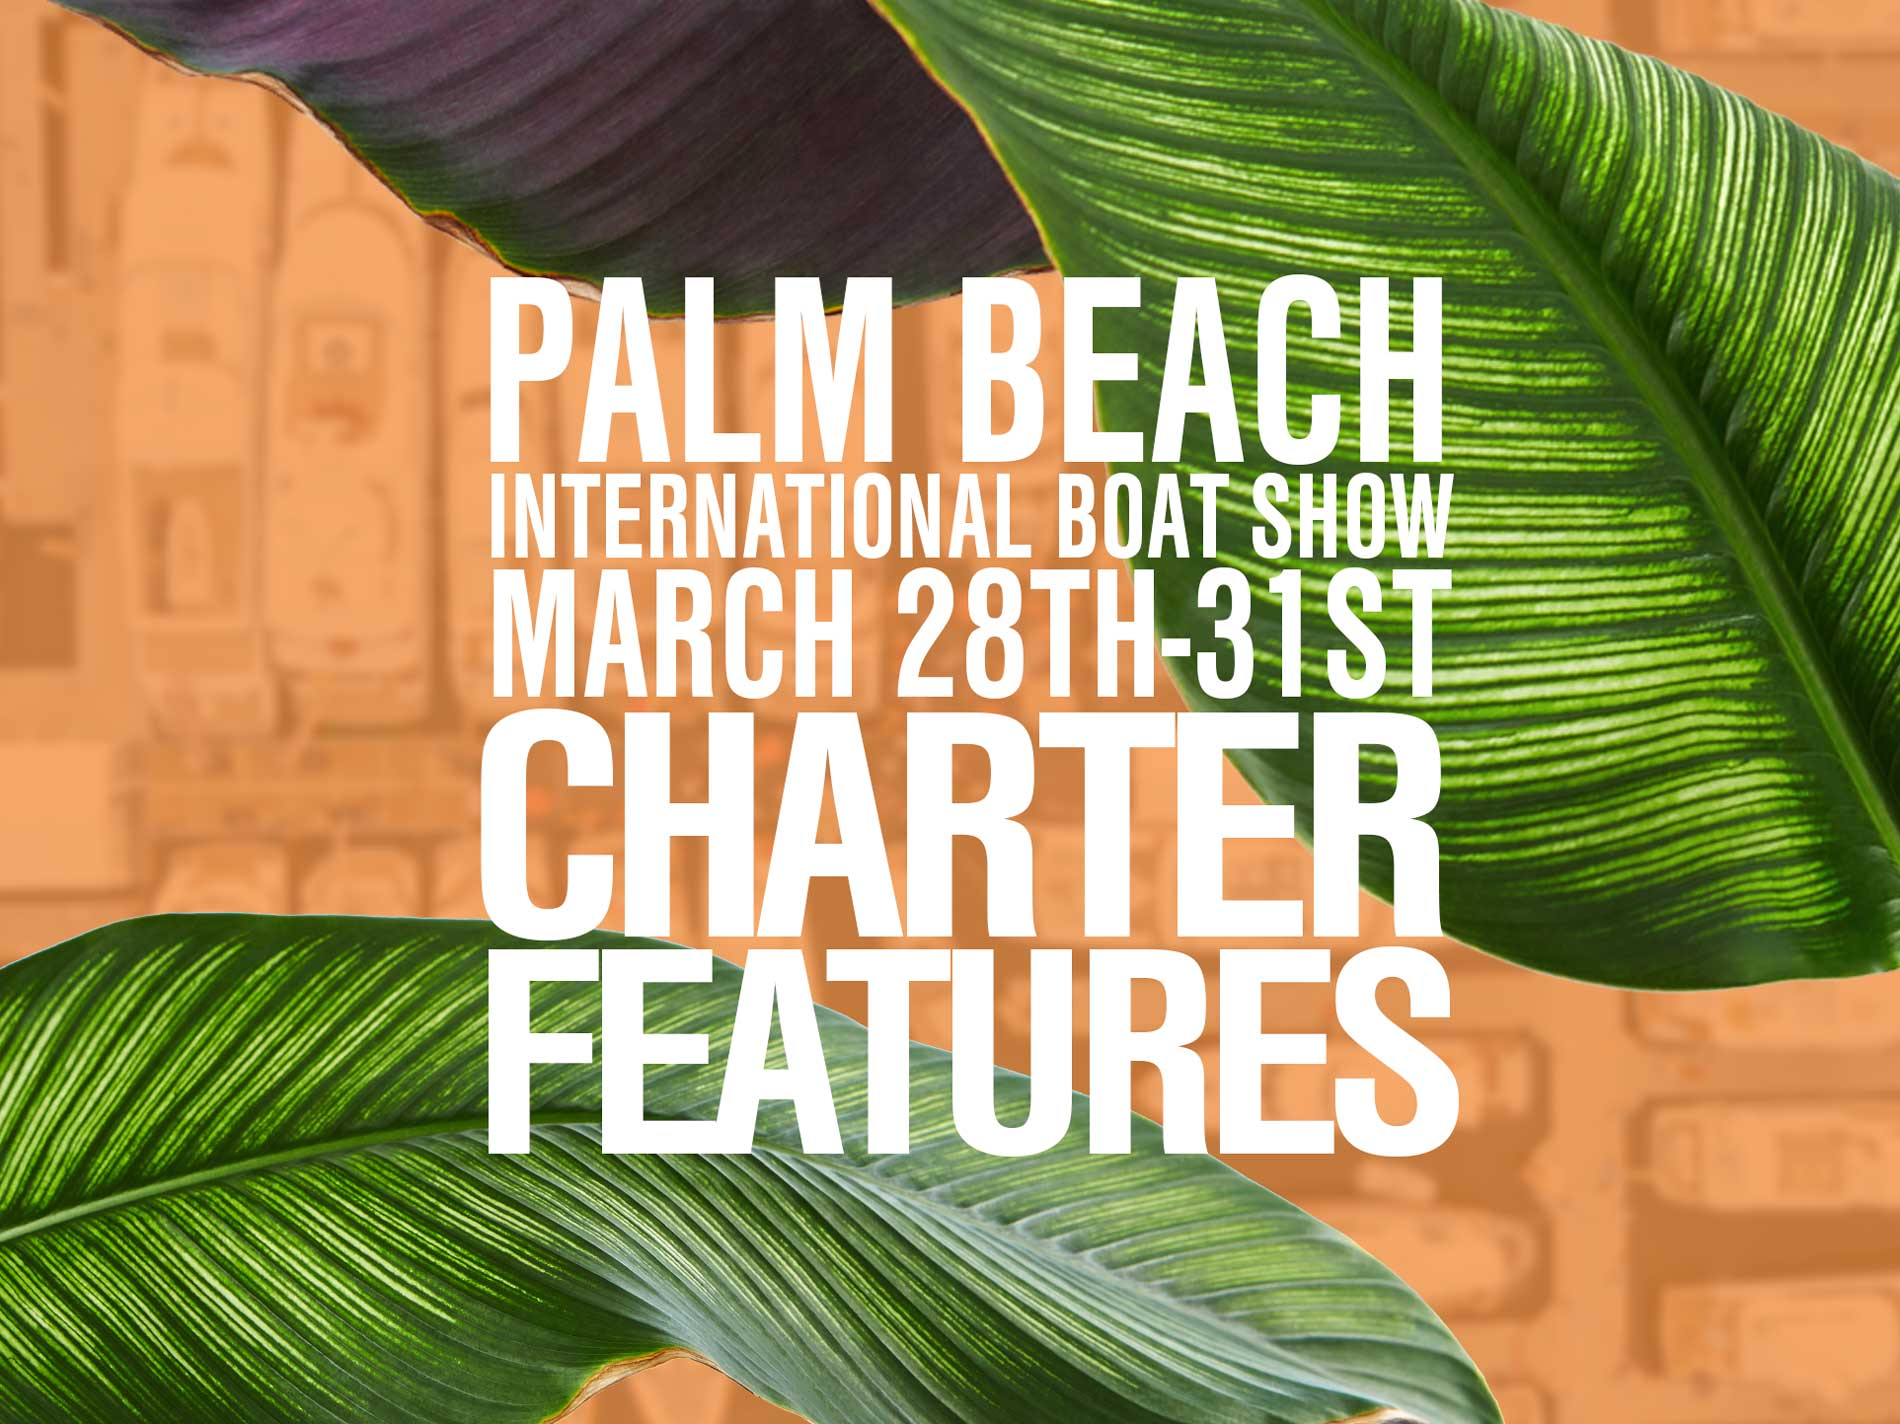 Charter Yachts on Display at the Palm Beach International Boat Show 2019